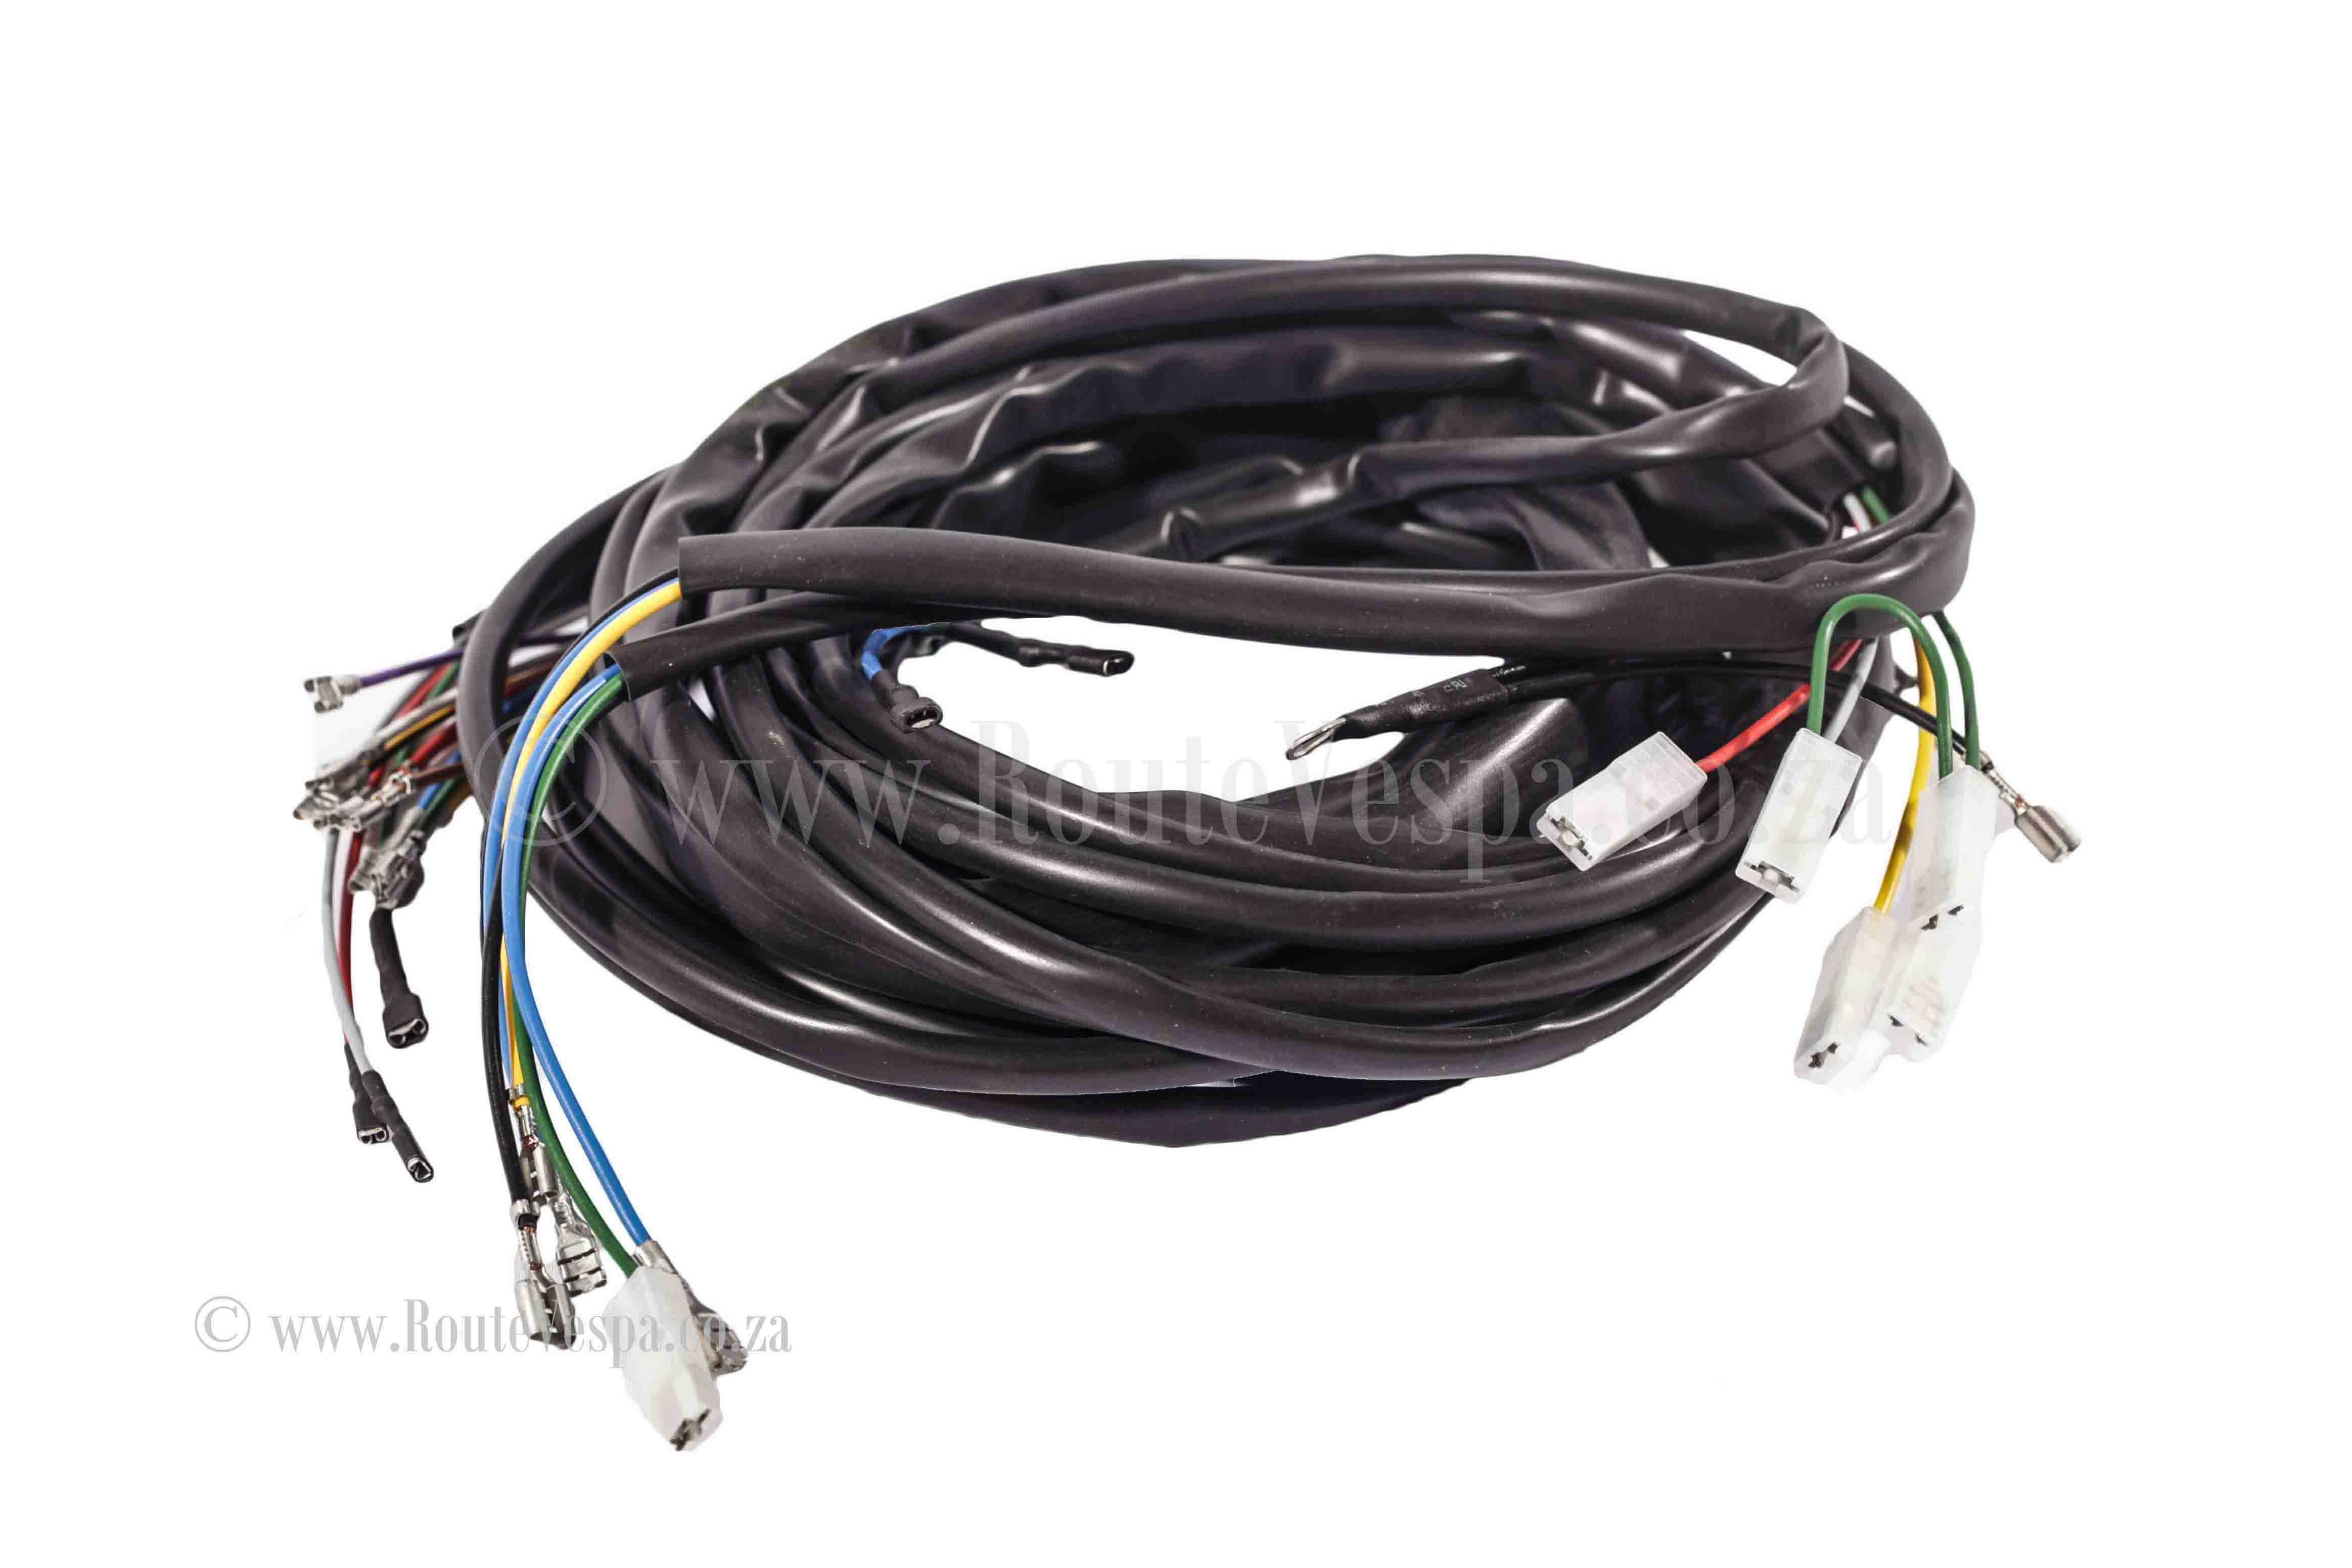 Wiring harness without indicators - 90,90ss,PV   Route Vespa on